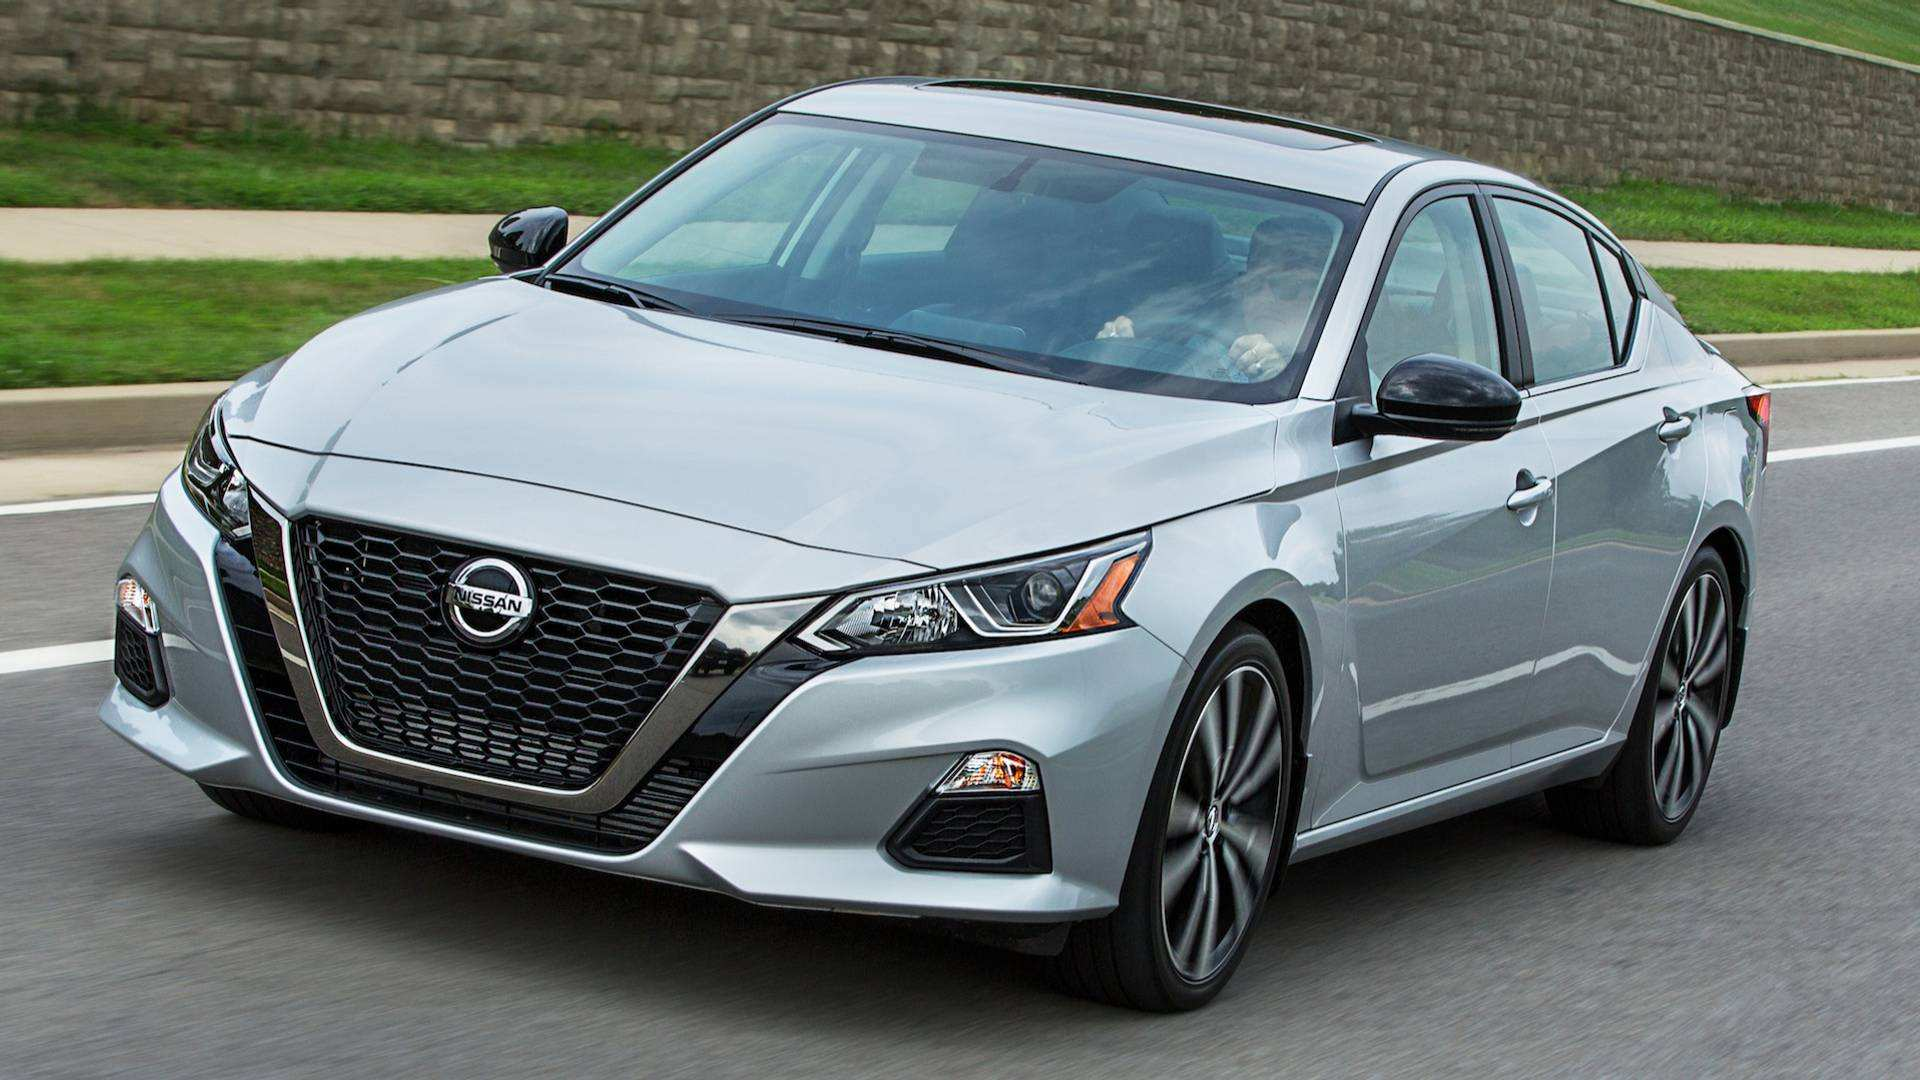 20 The 2019 Nissan Altima Rendering Prices with 2019 Nissan Altima Rendering